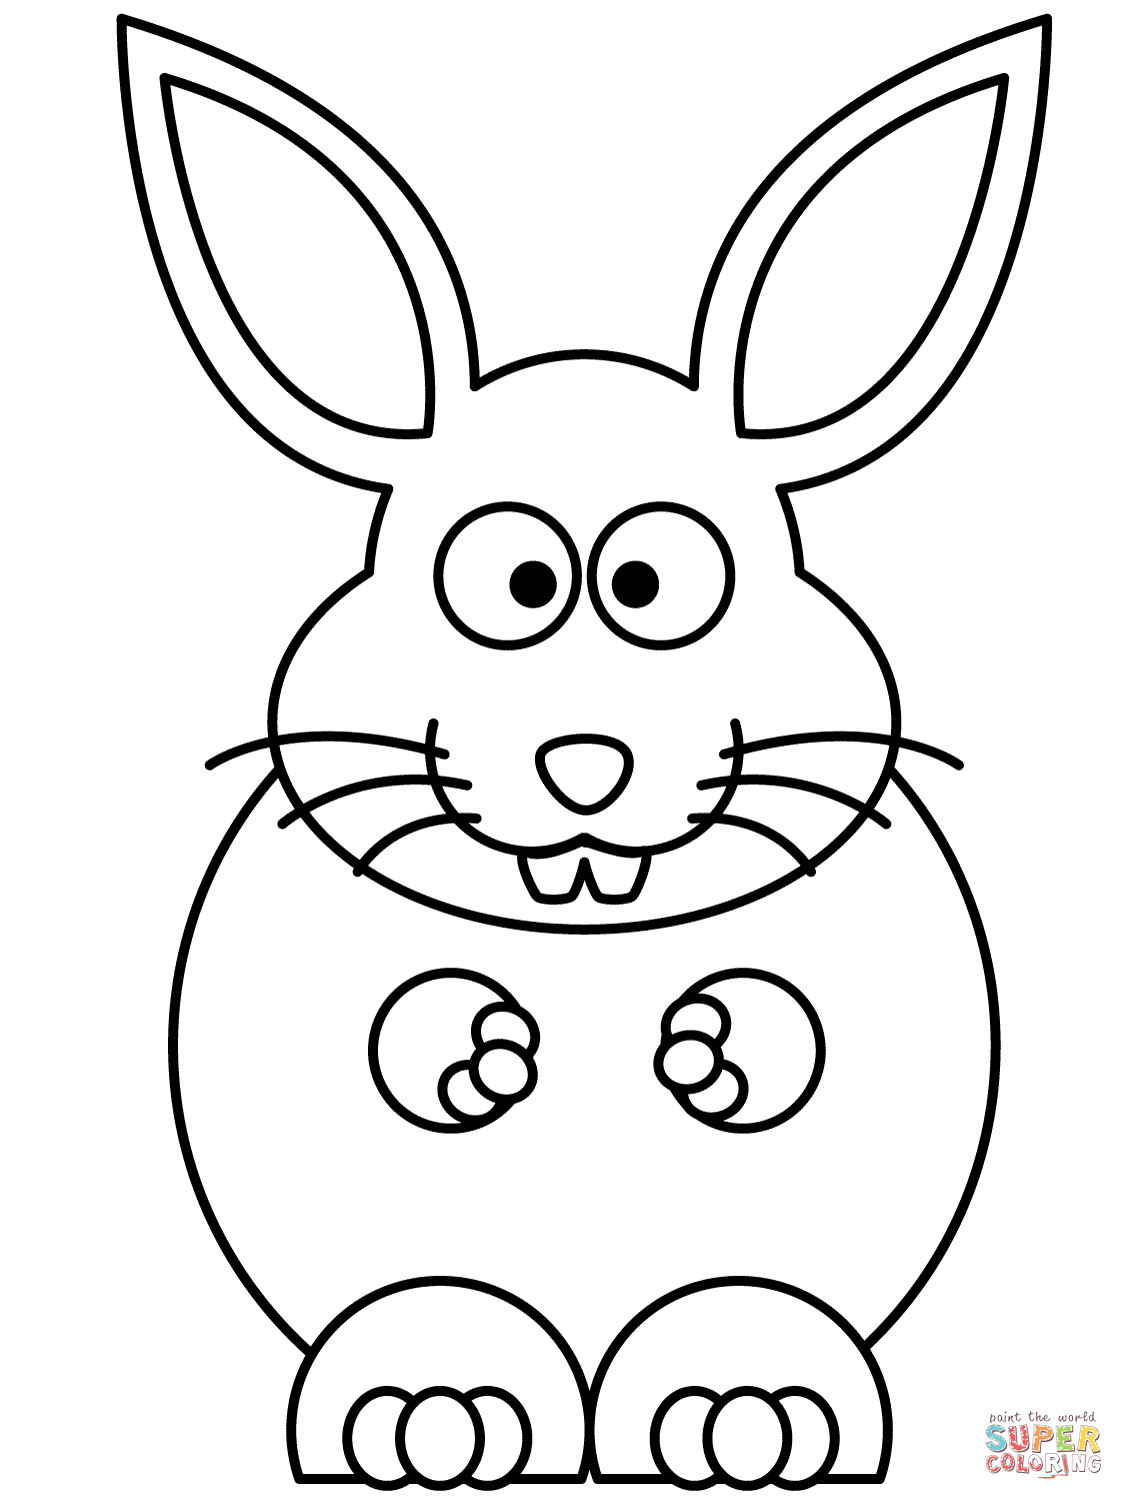 coloring easter bunnies easy easter bunny coloring pages at getcoloringscom coloring bunnies easter